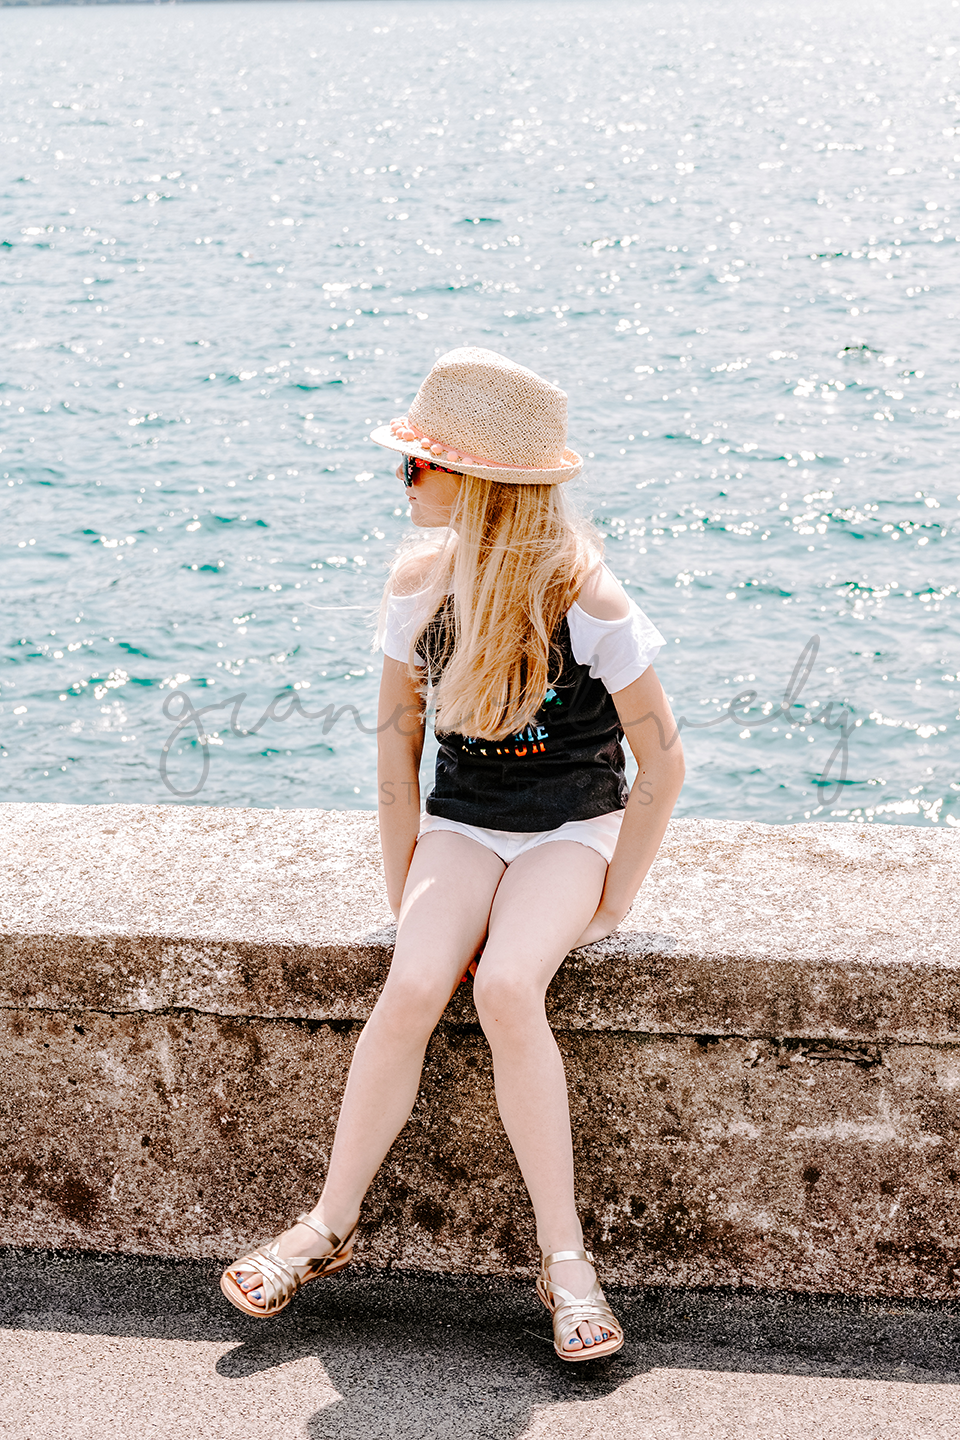 #TRAVEL #LIFESTYLE Child Sitting by the Water | Single Photo - Grand & Lovely Stock styled photography desktops lifestyle screens desktops stationary